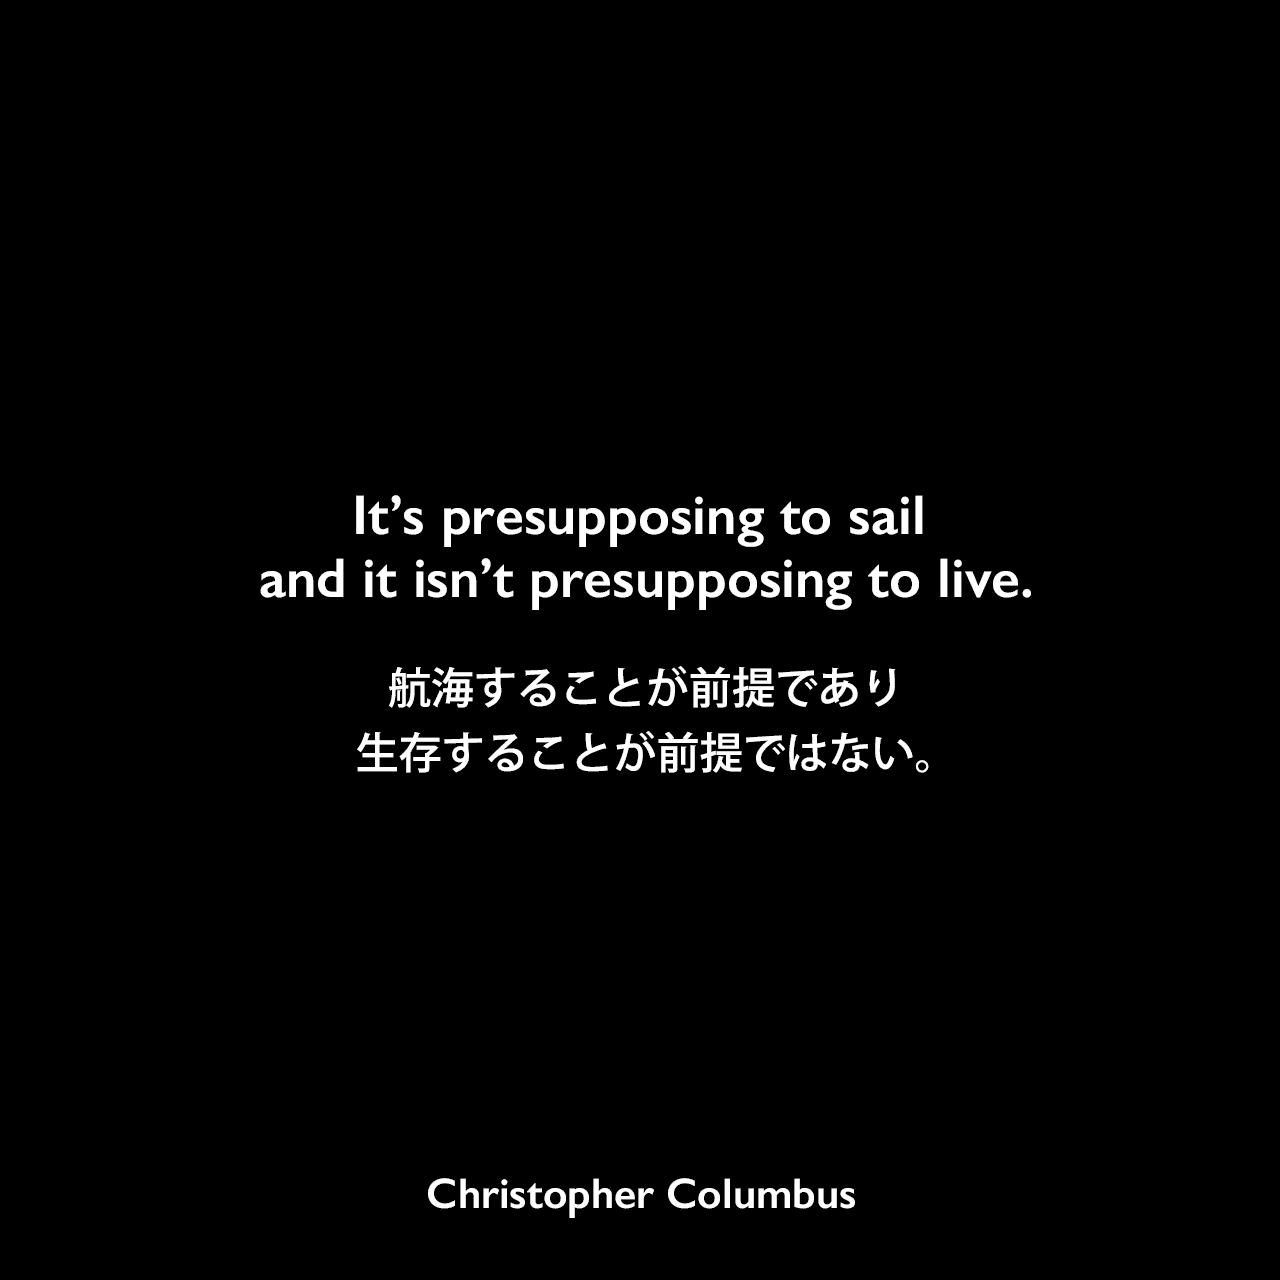 It's presupposing to sail and it isn't presupposing to live.航海することが前提であり、生存することが前提ではない。Christopher Columbus